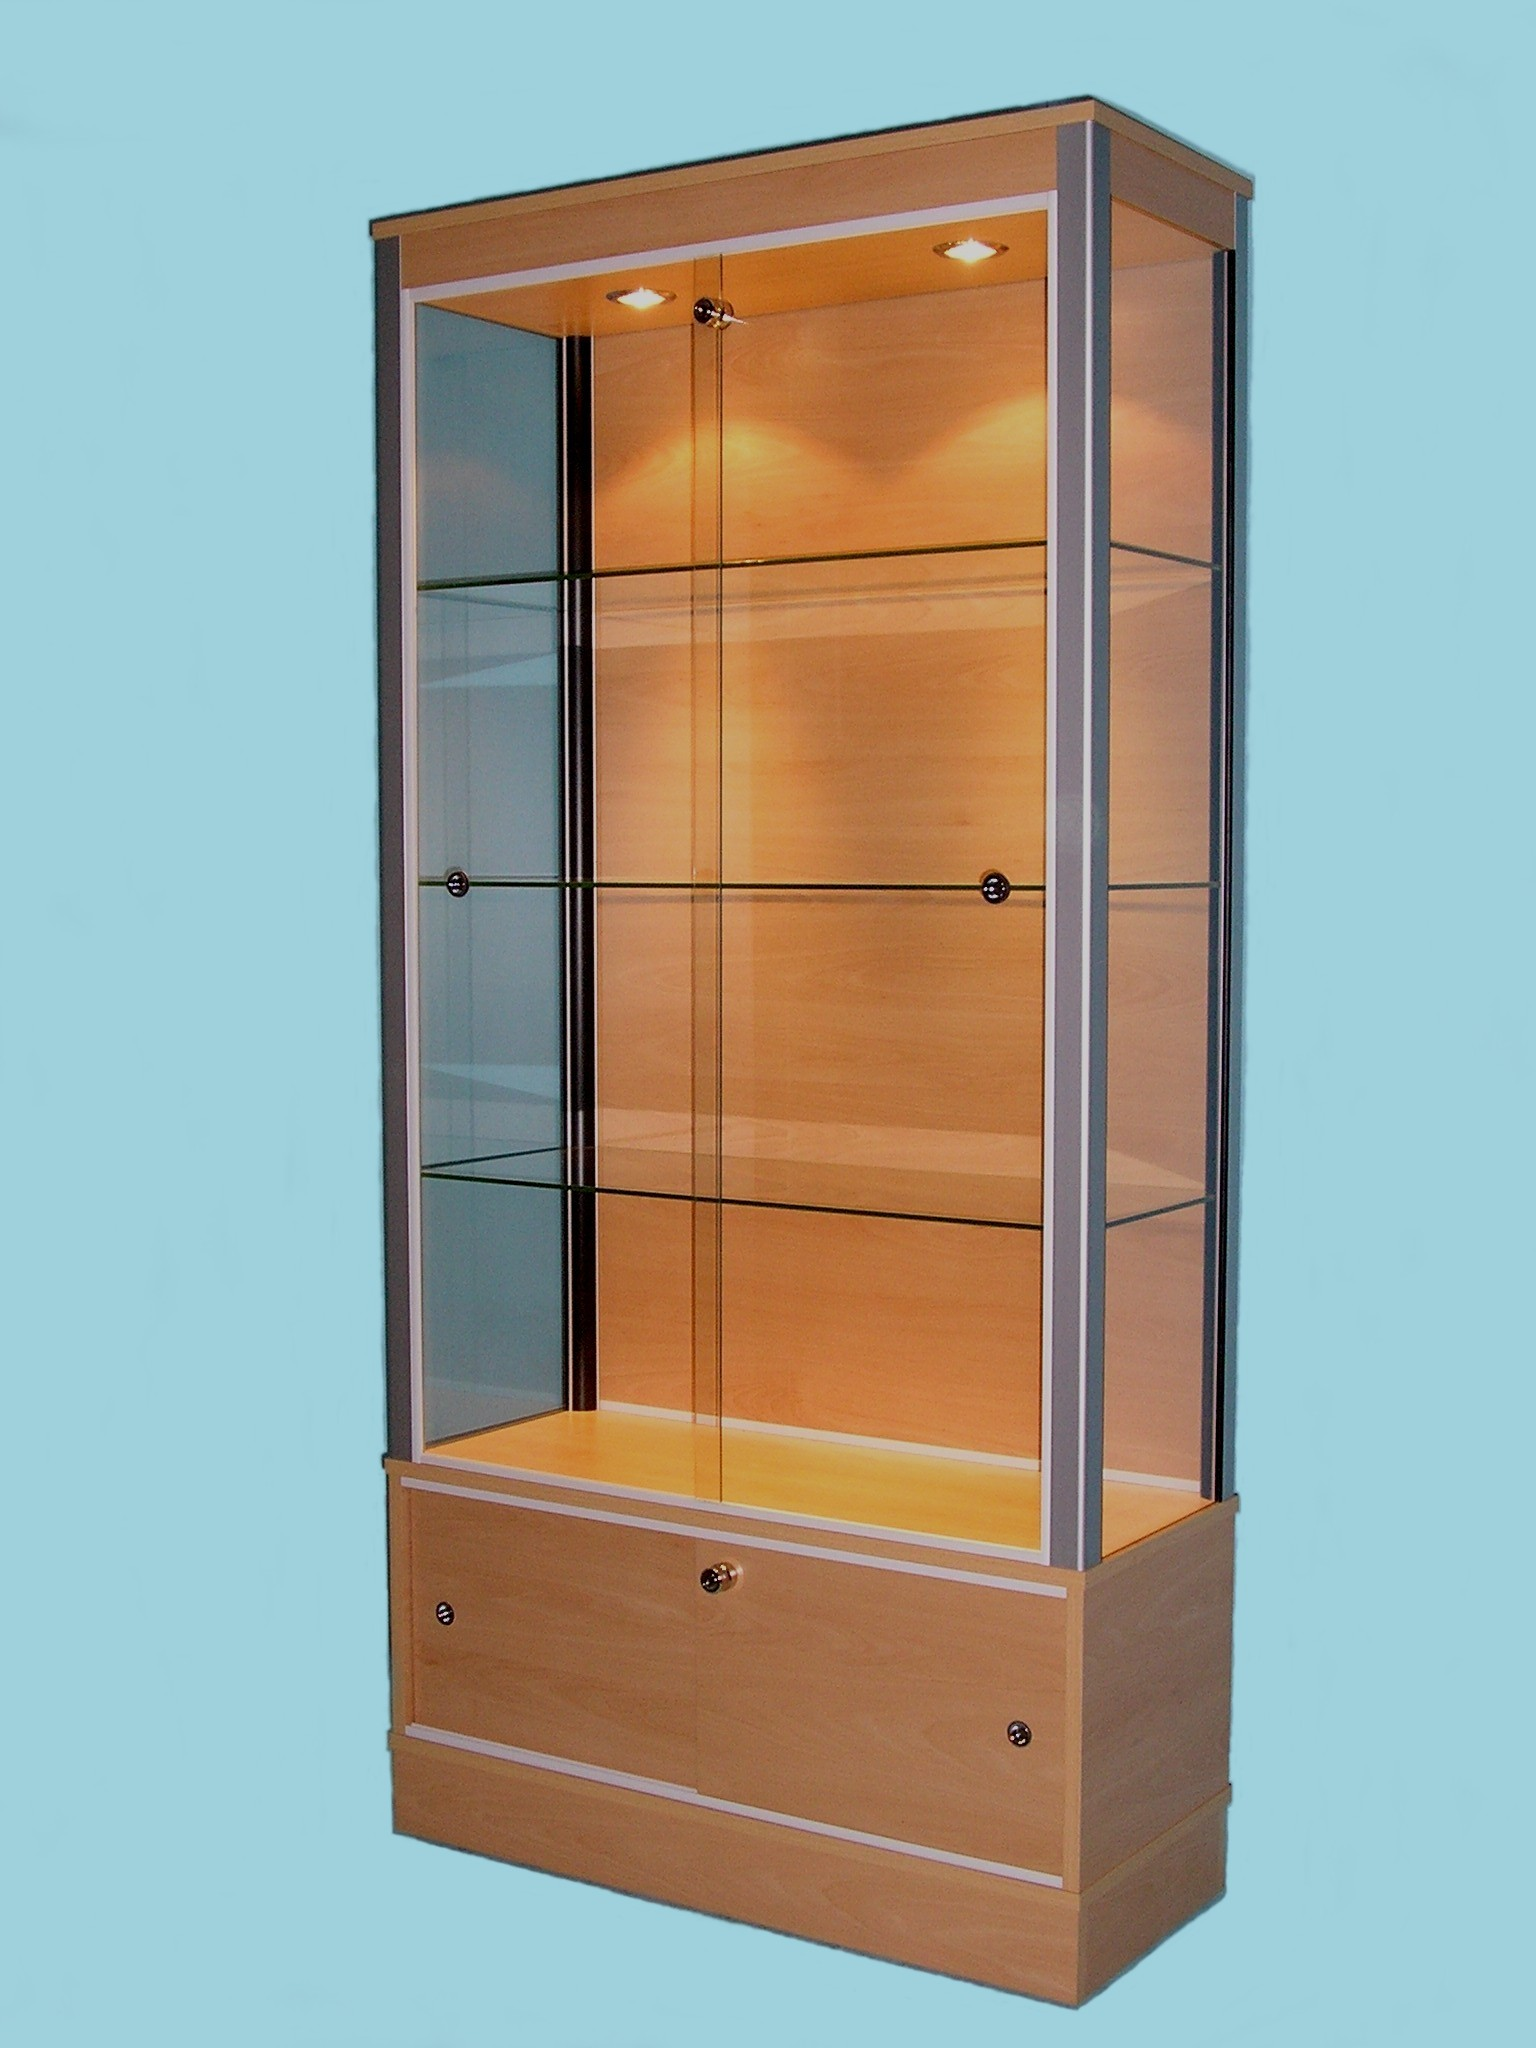 Designex Cabinets beech D51 glass display cabinet